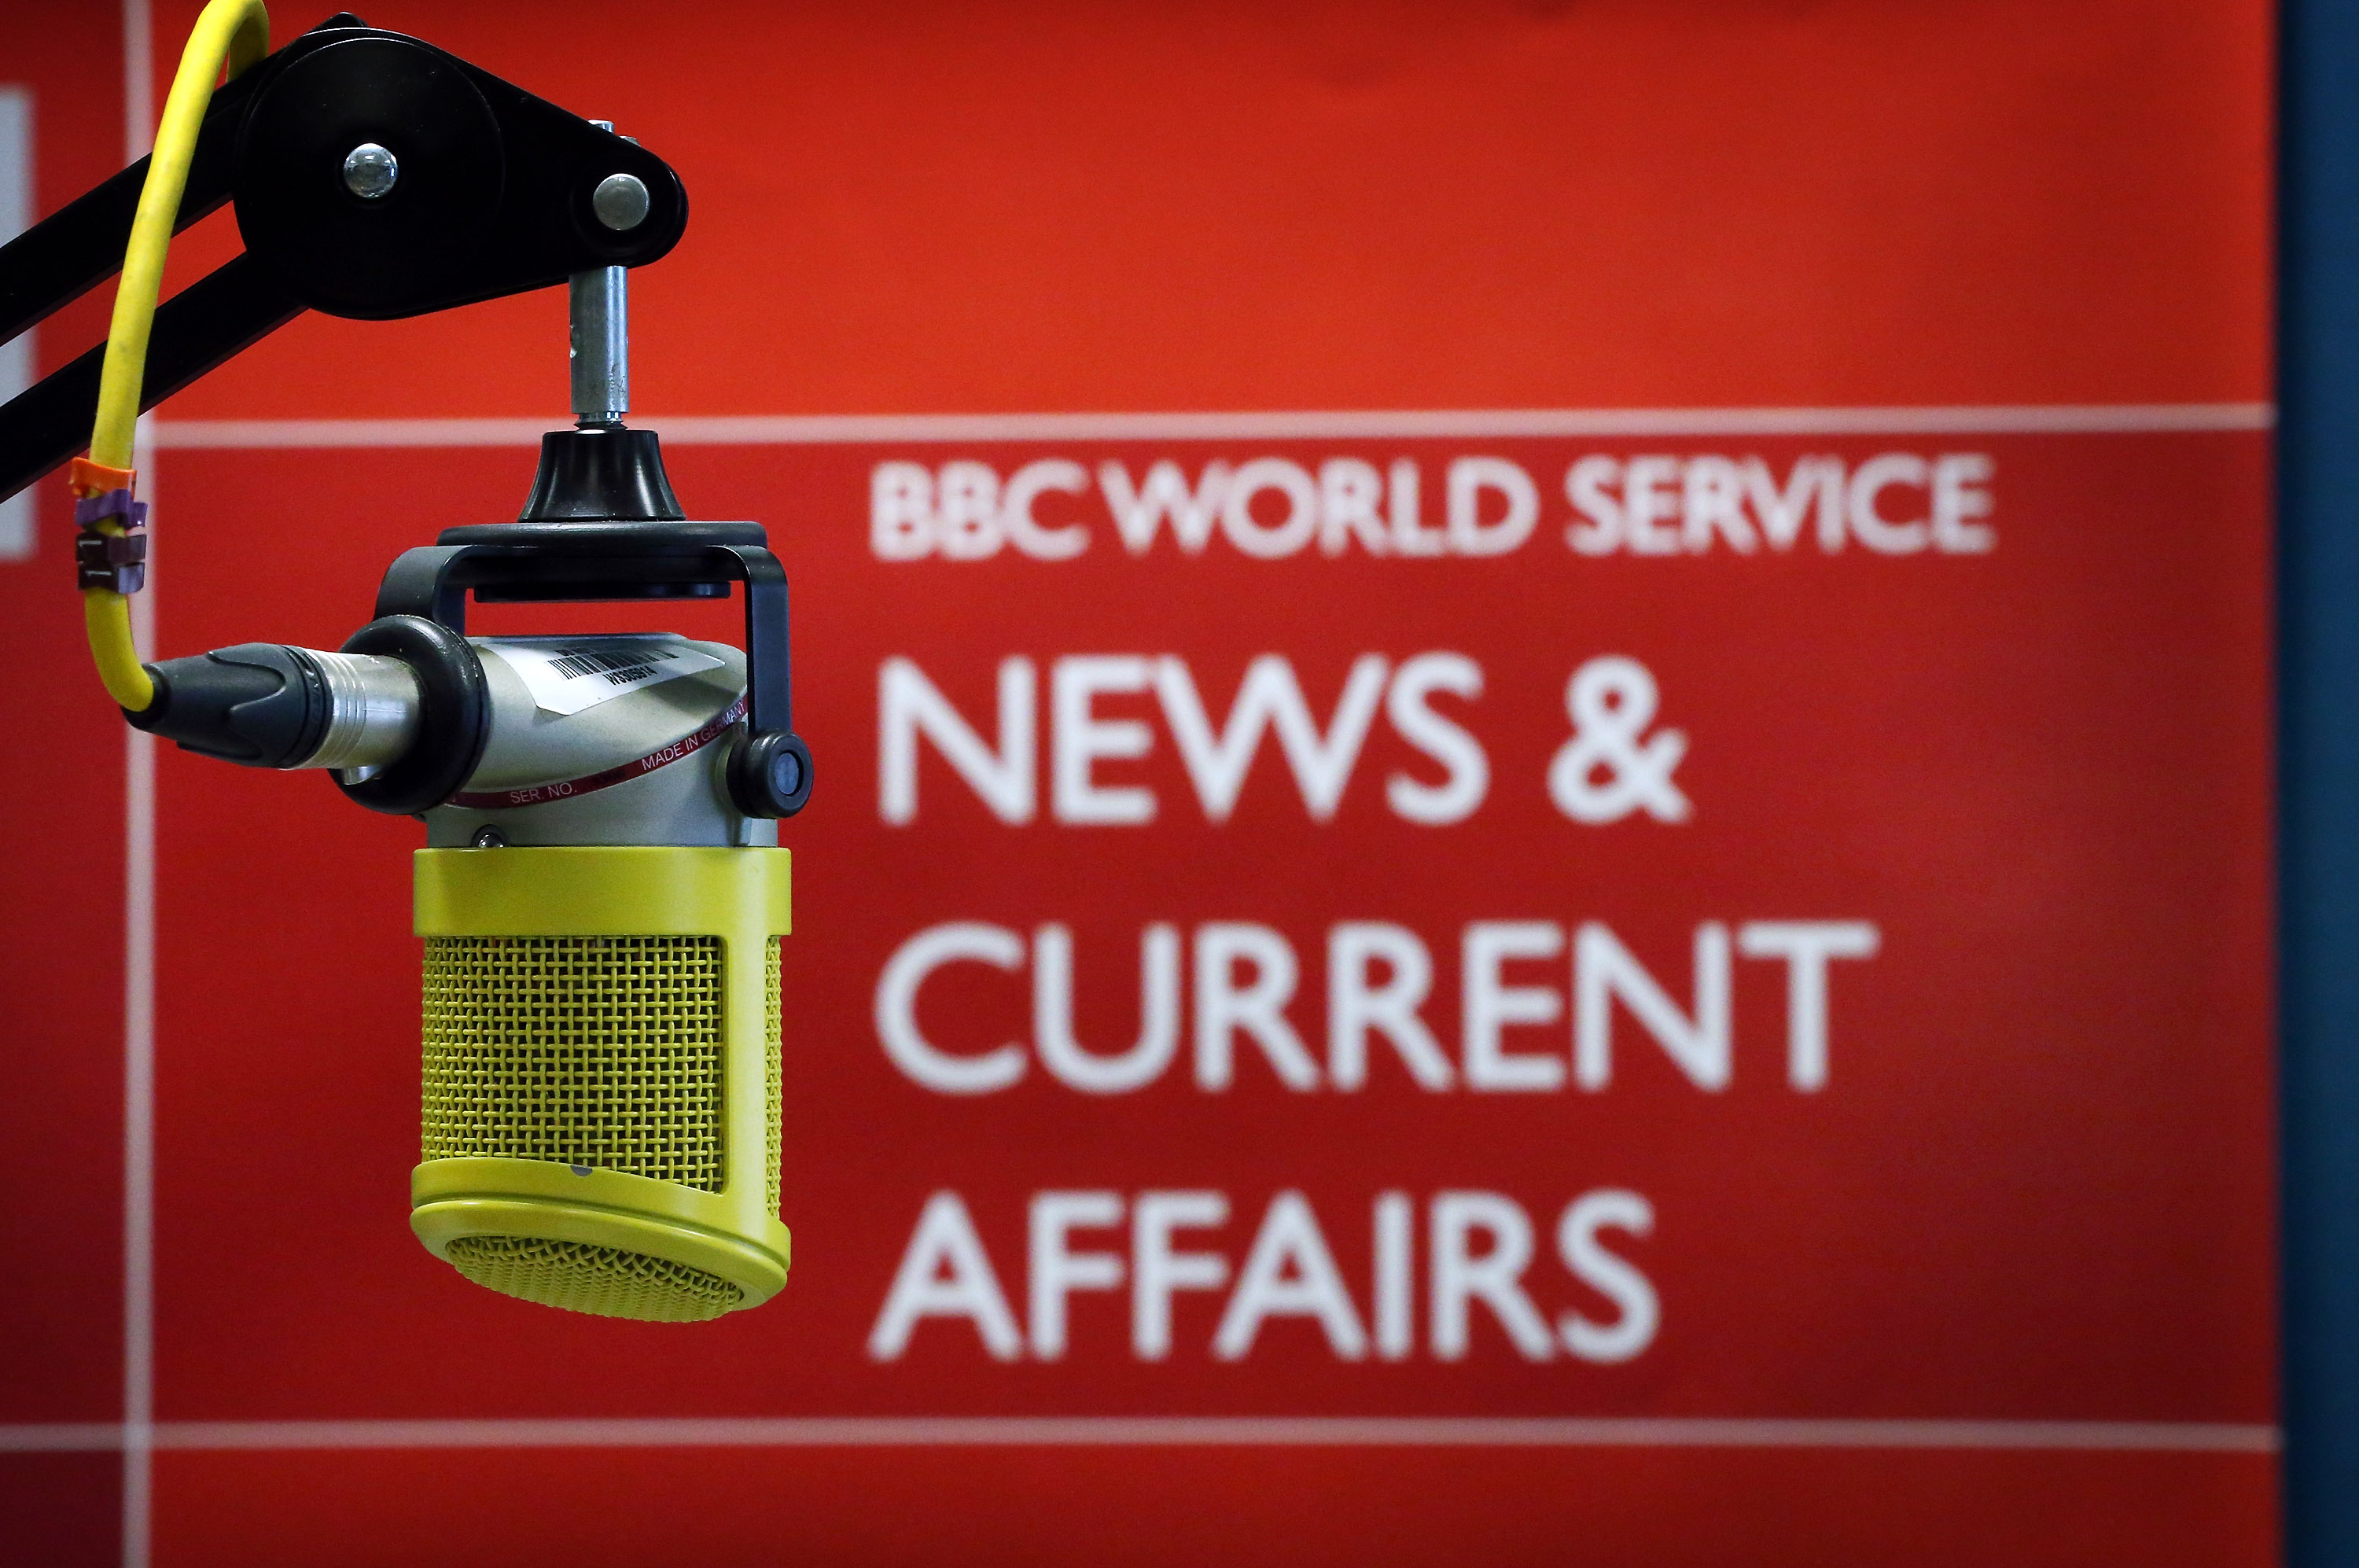 BBC targets emerging markets with World Service news apps for Nokia Series 40 devices, in 11 languages ...